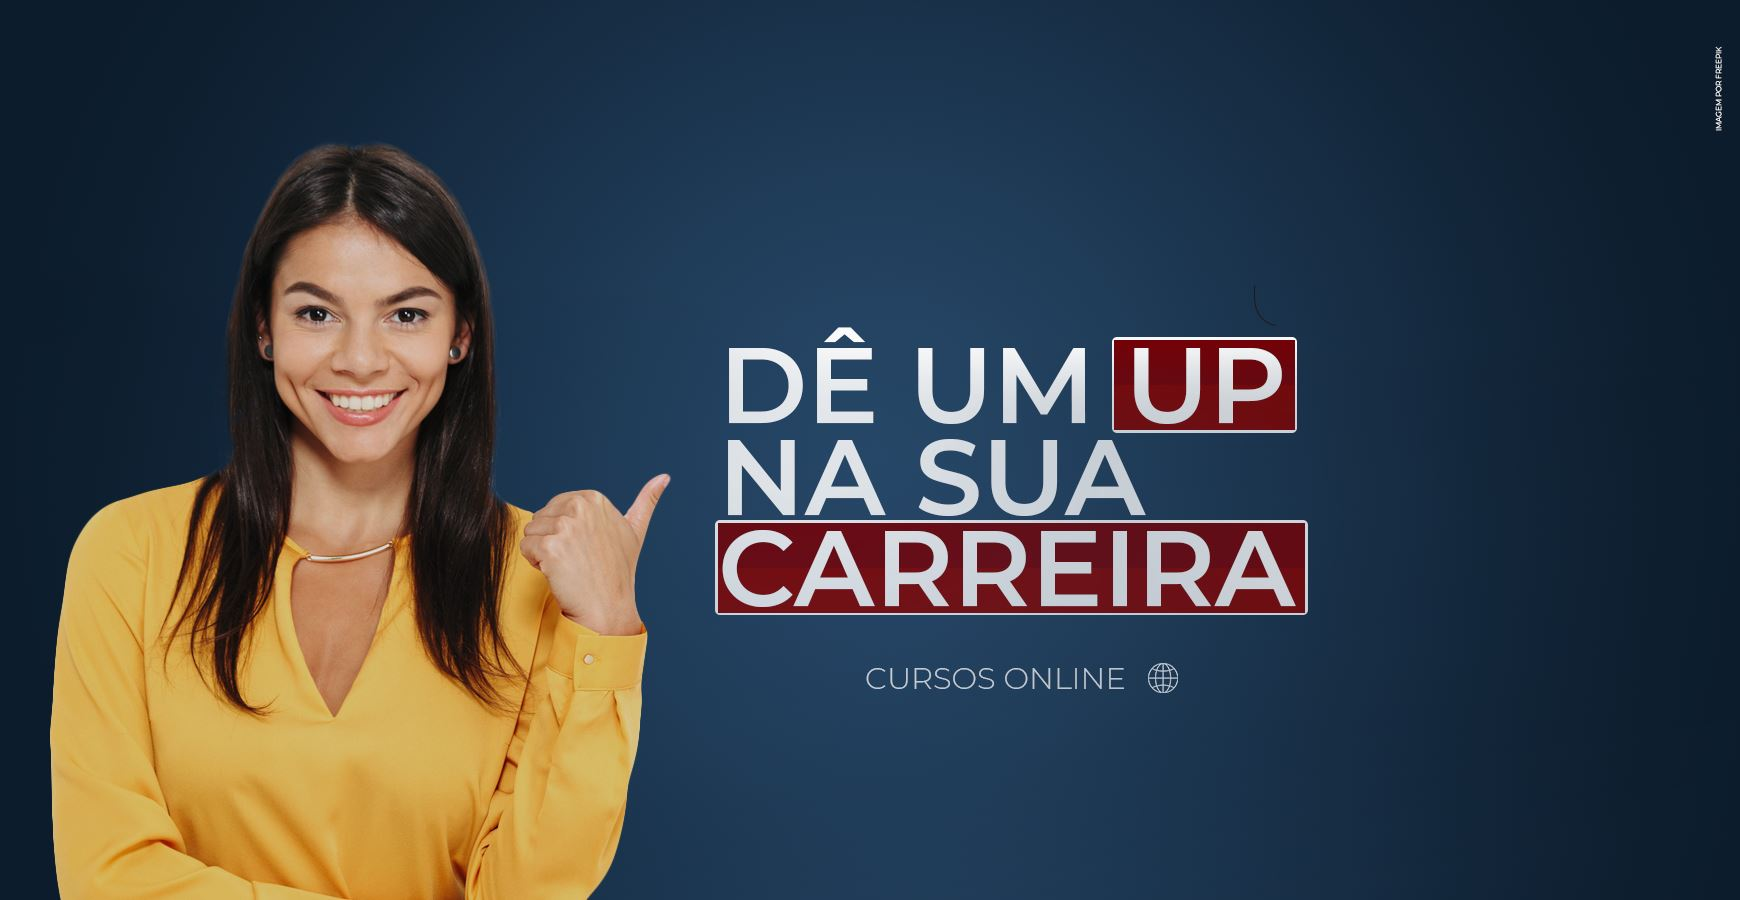 Up ca Carreria